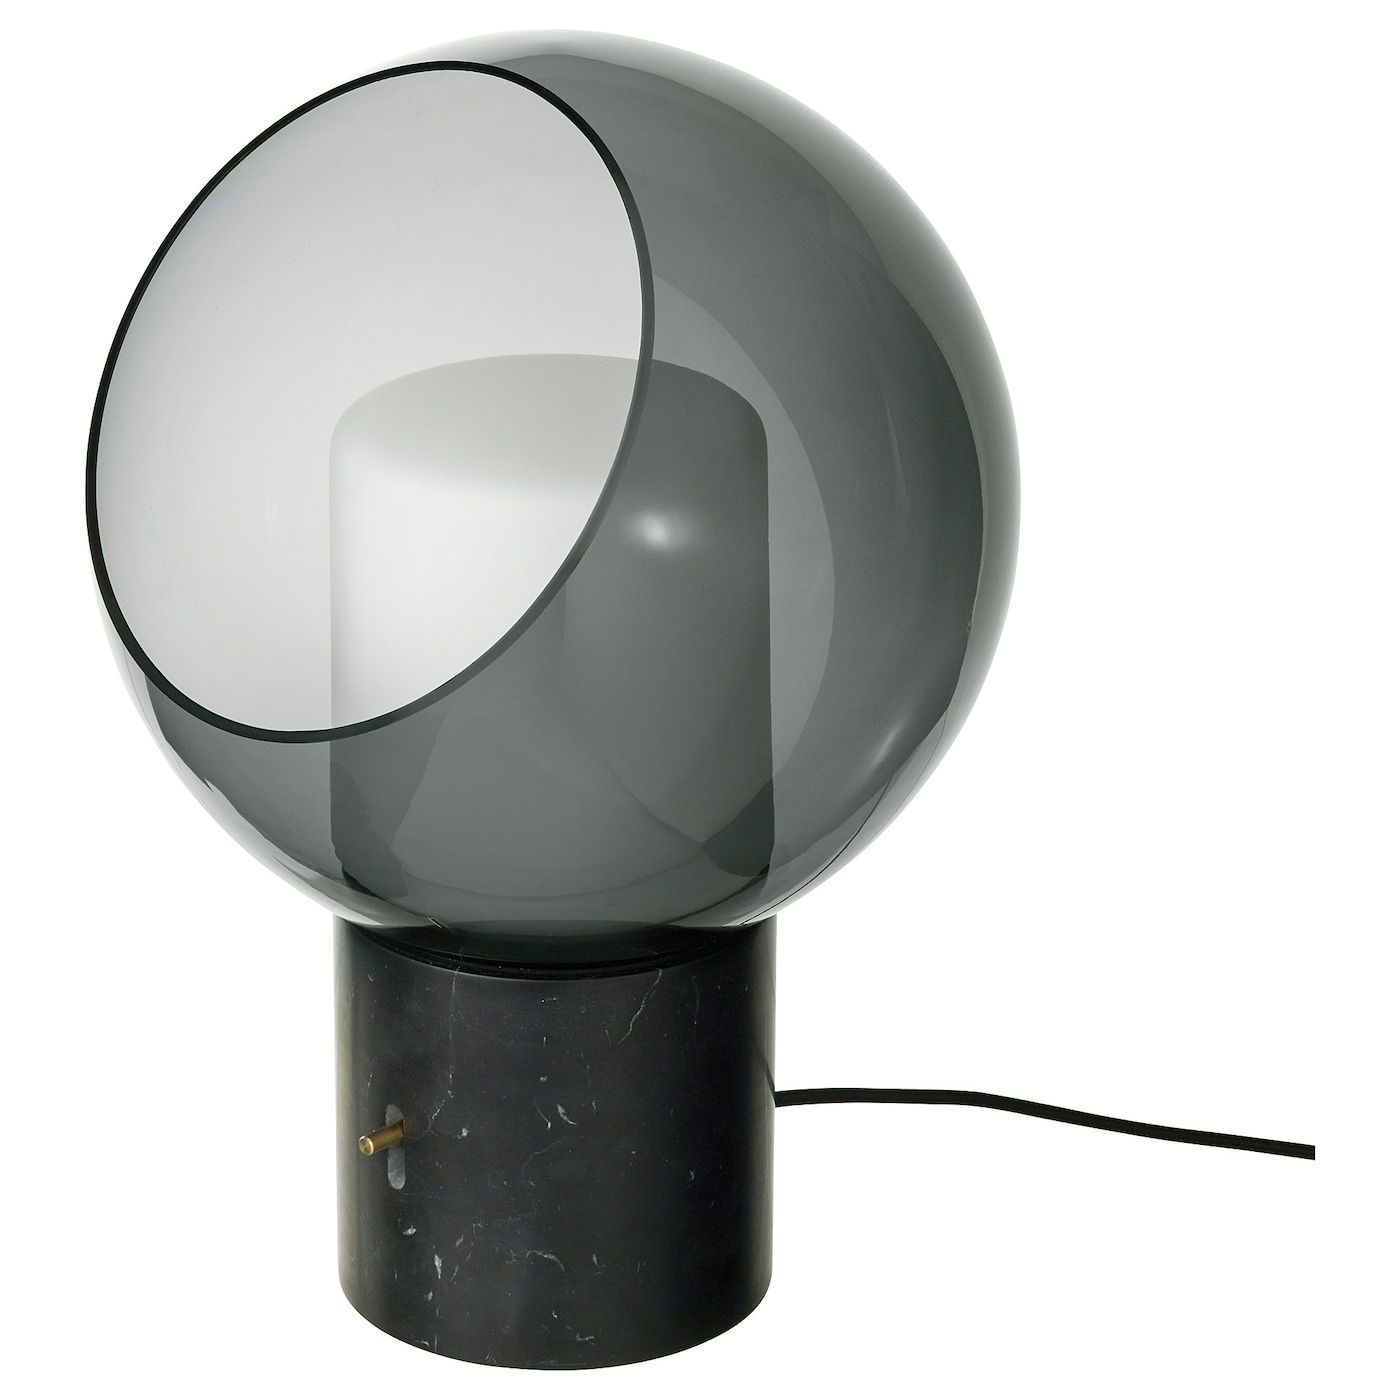 Evedal Table Lamp Marble Gray Gray Globe Globe In 2020 Table Lamp Ikea Table Lamp